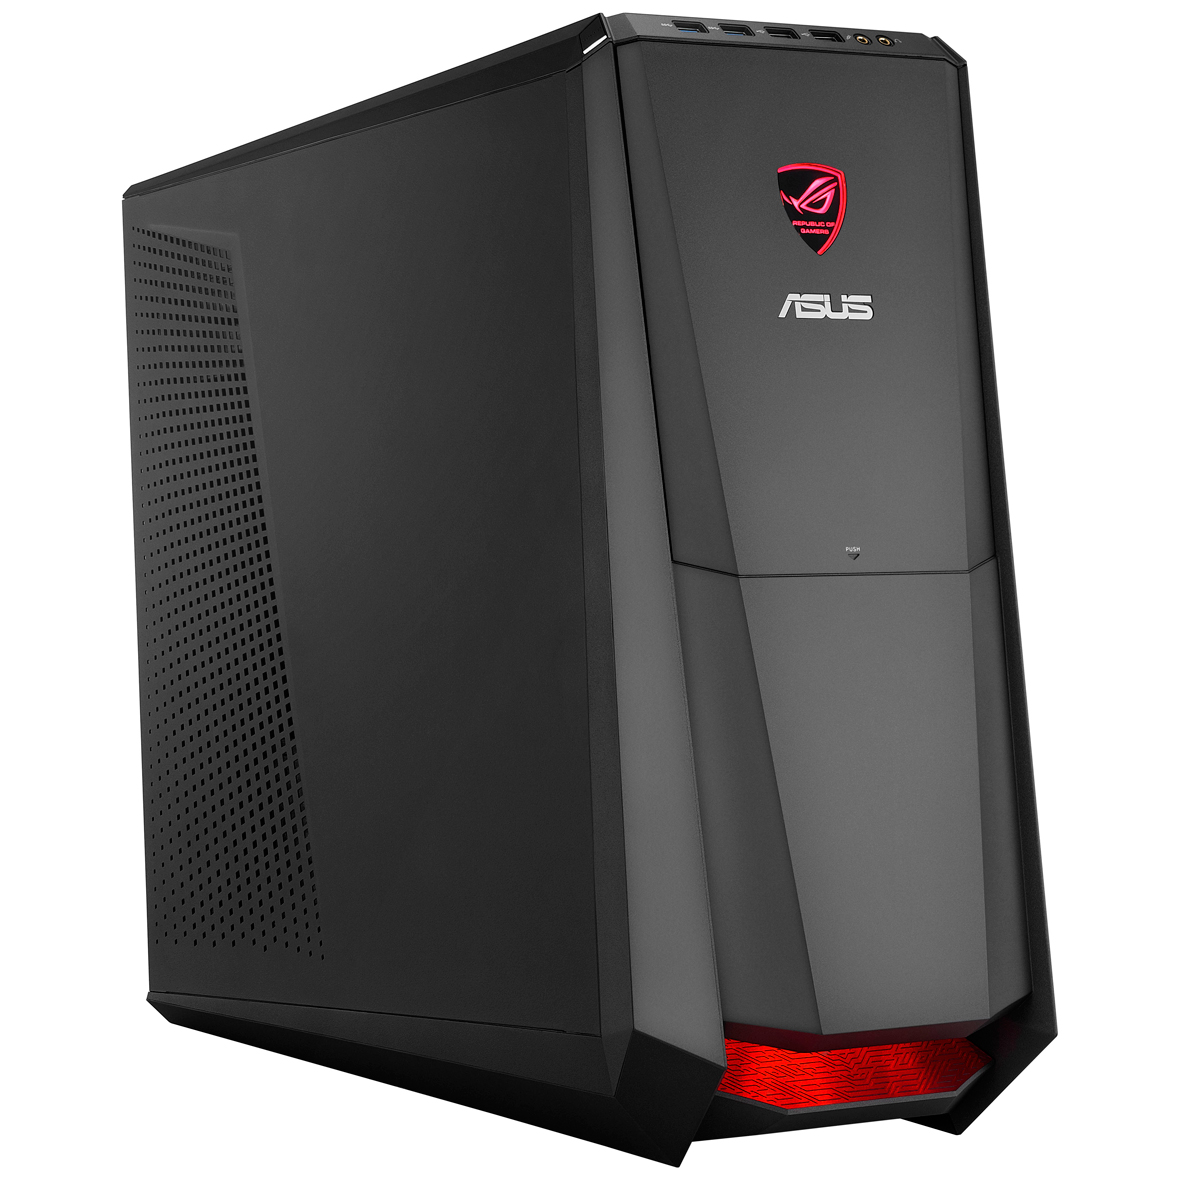 asus rog tytan cg8480 fr012s pc de bureau asus sur. Black Bedroom Furniture Sets. Home Design Ideas